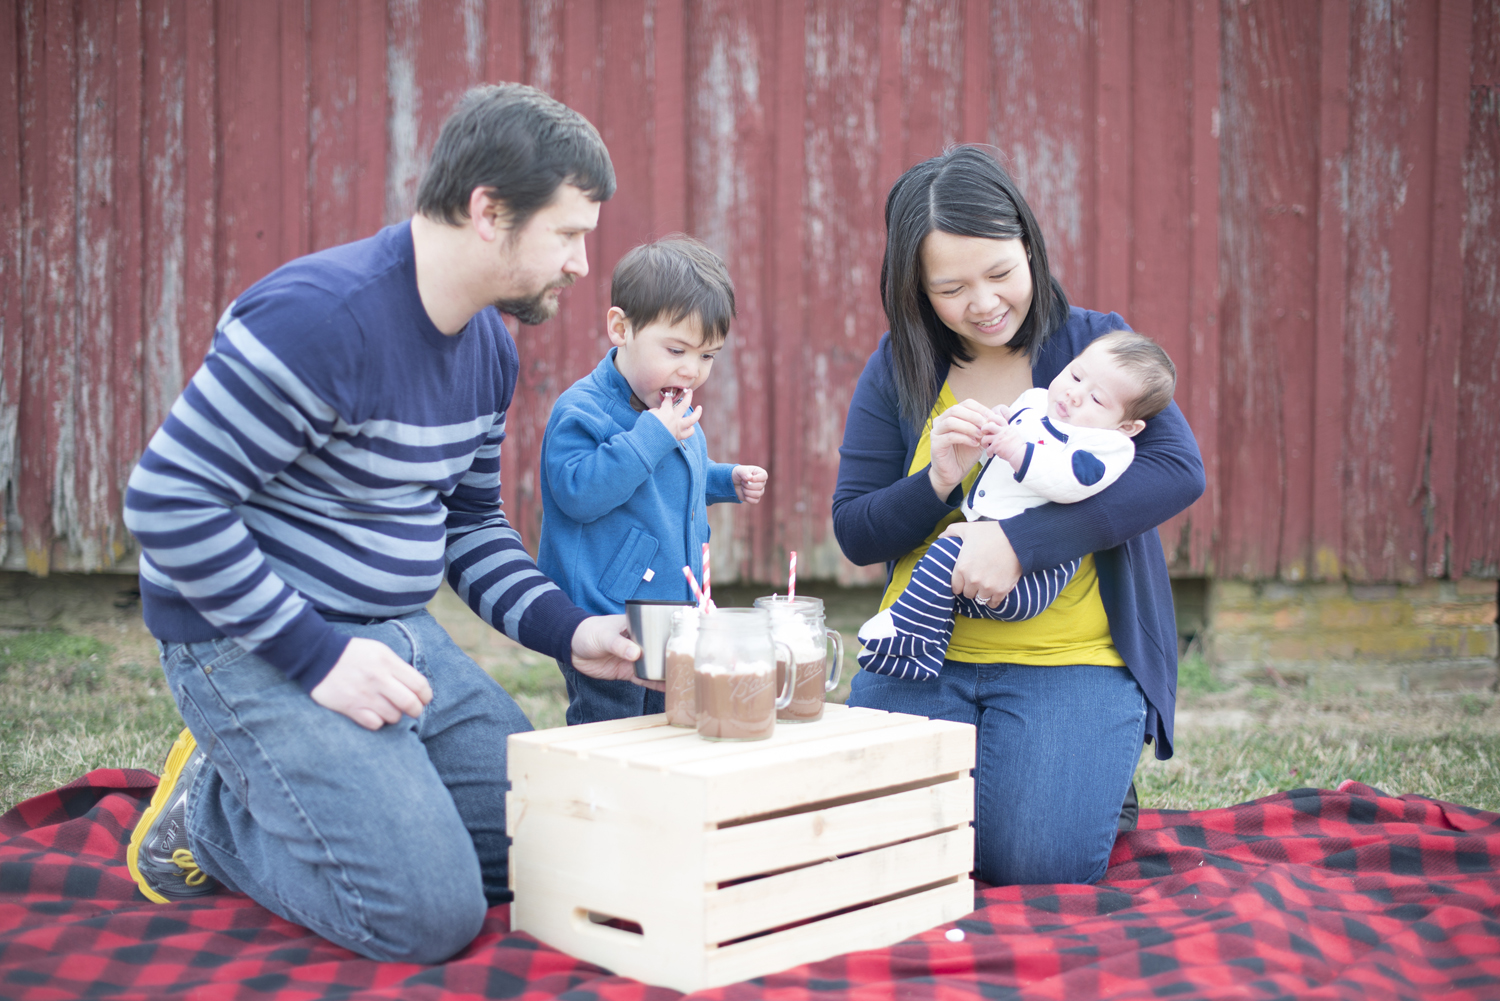 Cute family picture ideas with hot chocolate in the winter